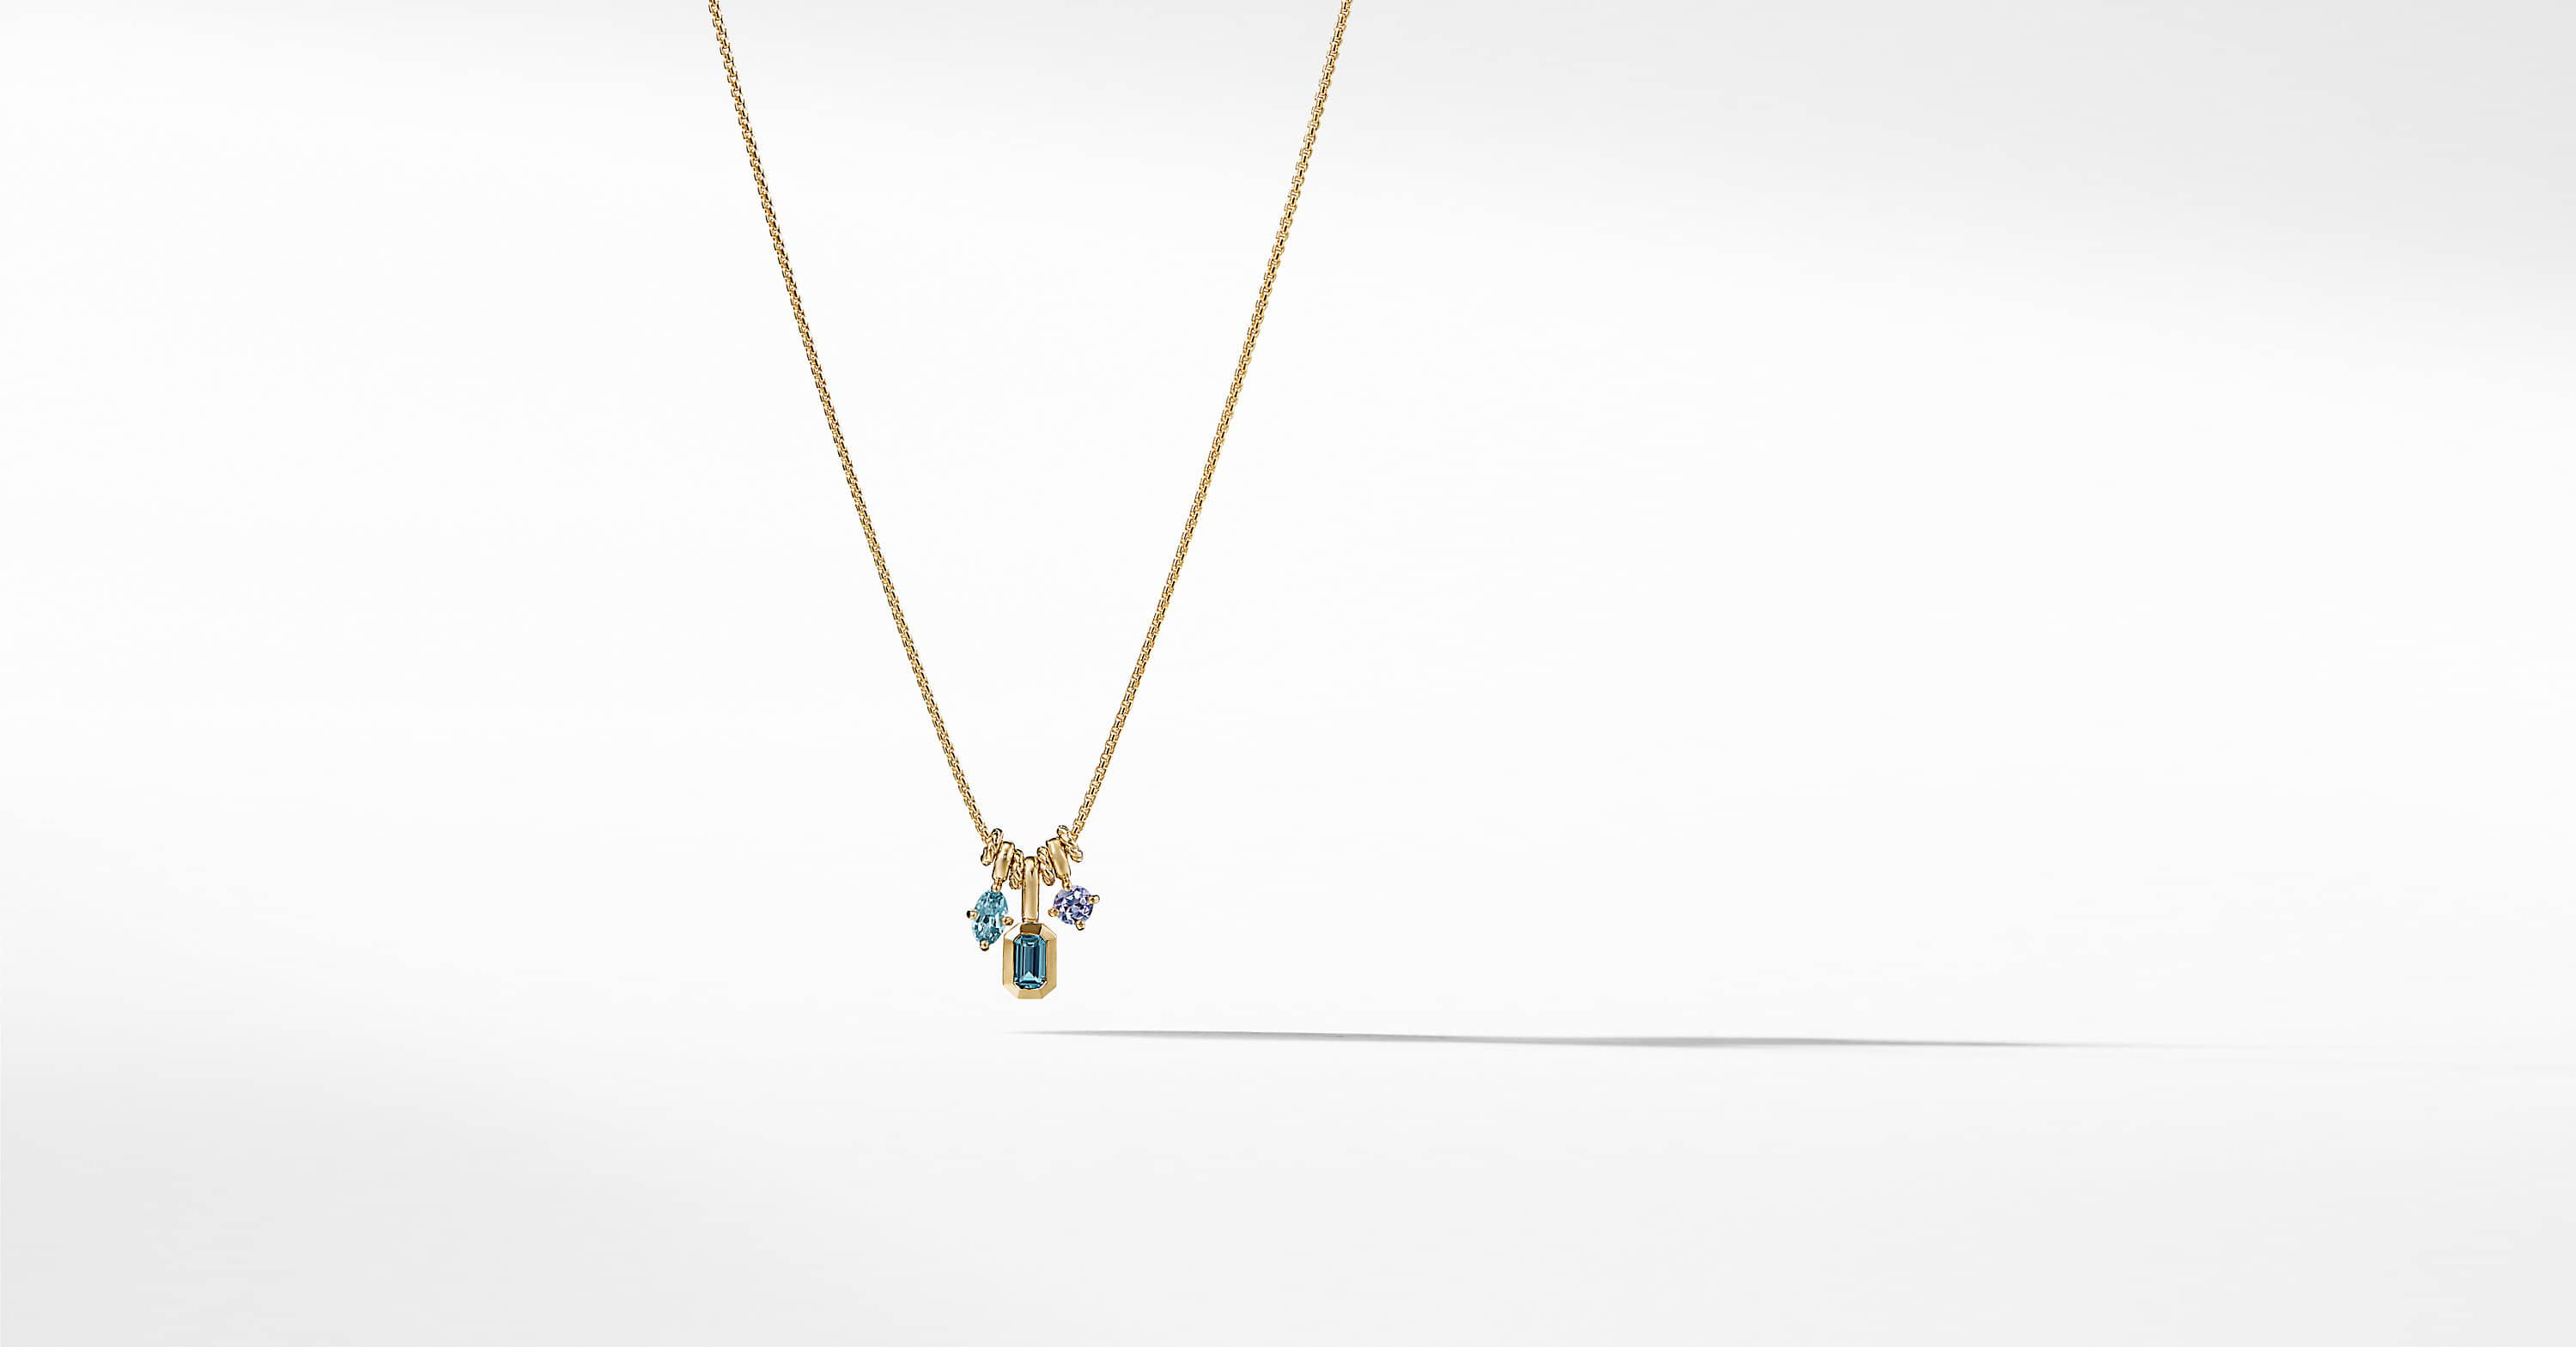 Novella Pendant Necklace in 18K Yellow Gold